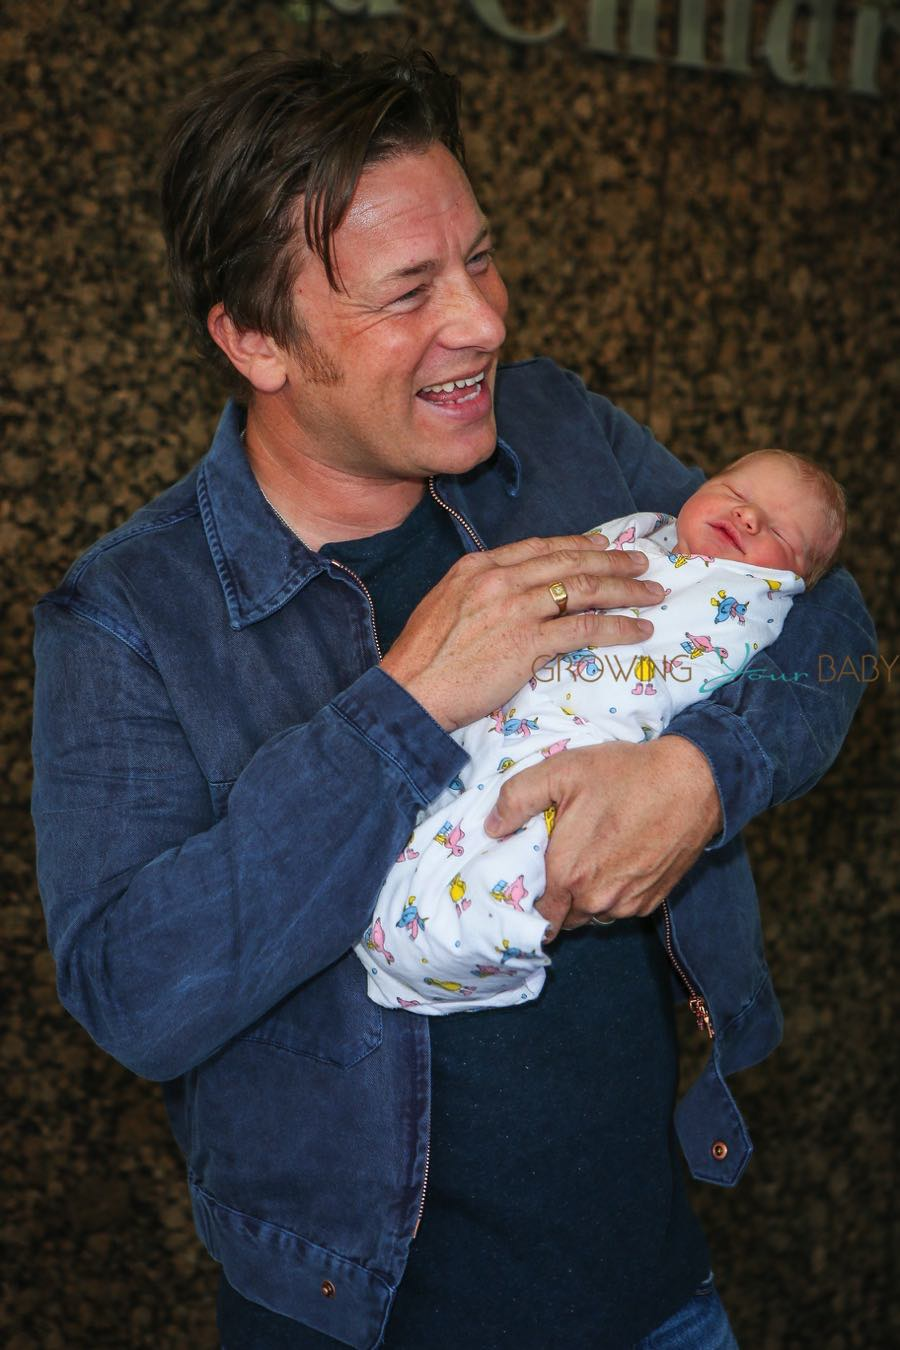 Oliver craddles his baby boy outside the hospital growing your baby